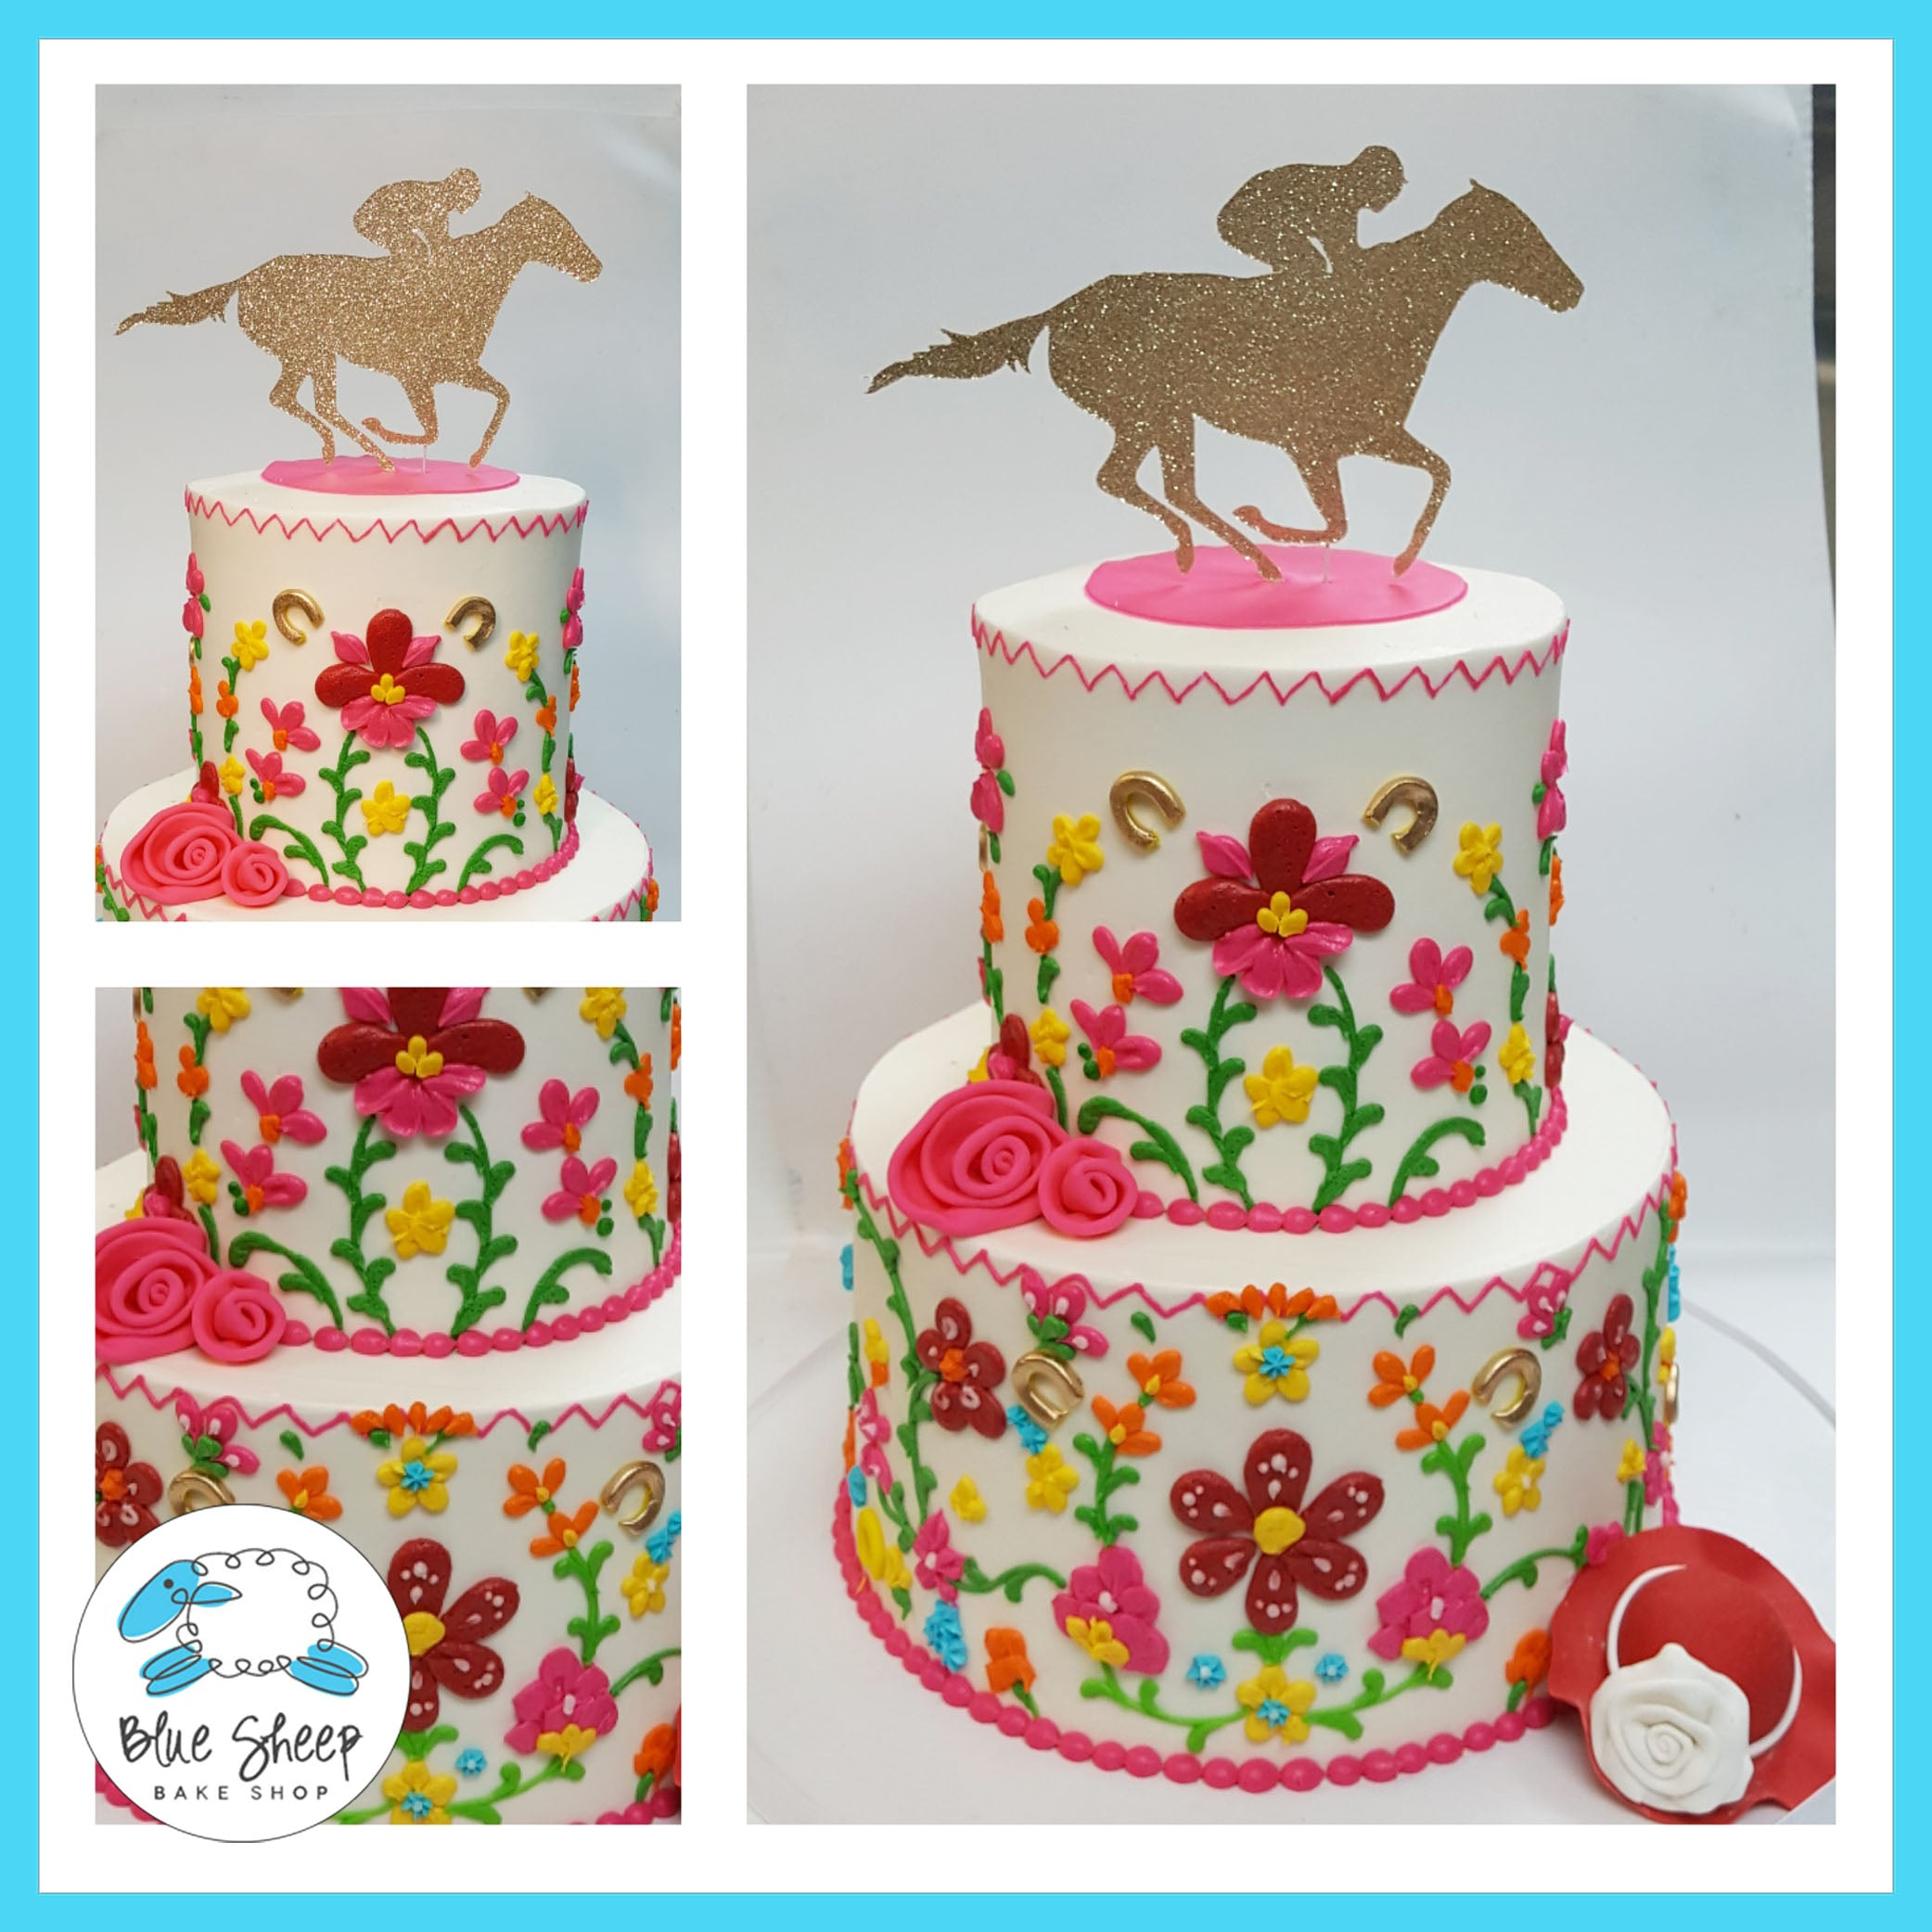 Cinco De Mayo Kentucky Derby Cake Blue Sheep Bake Shop